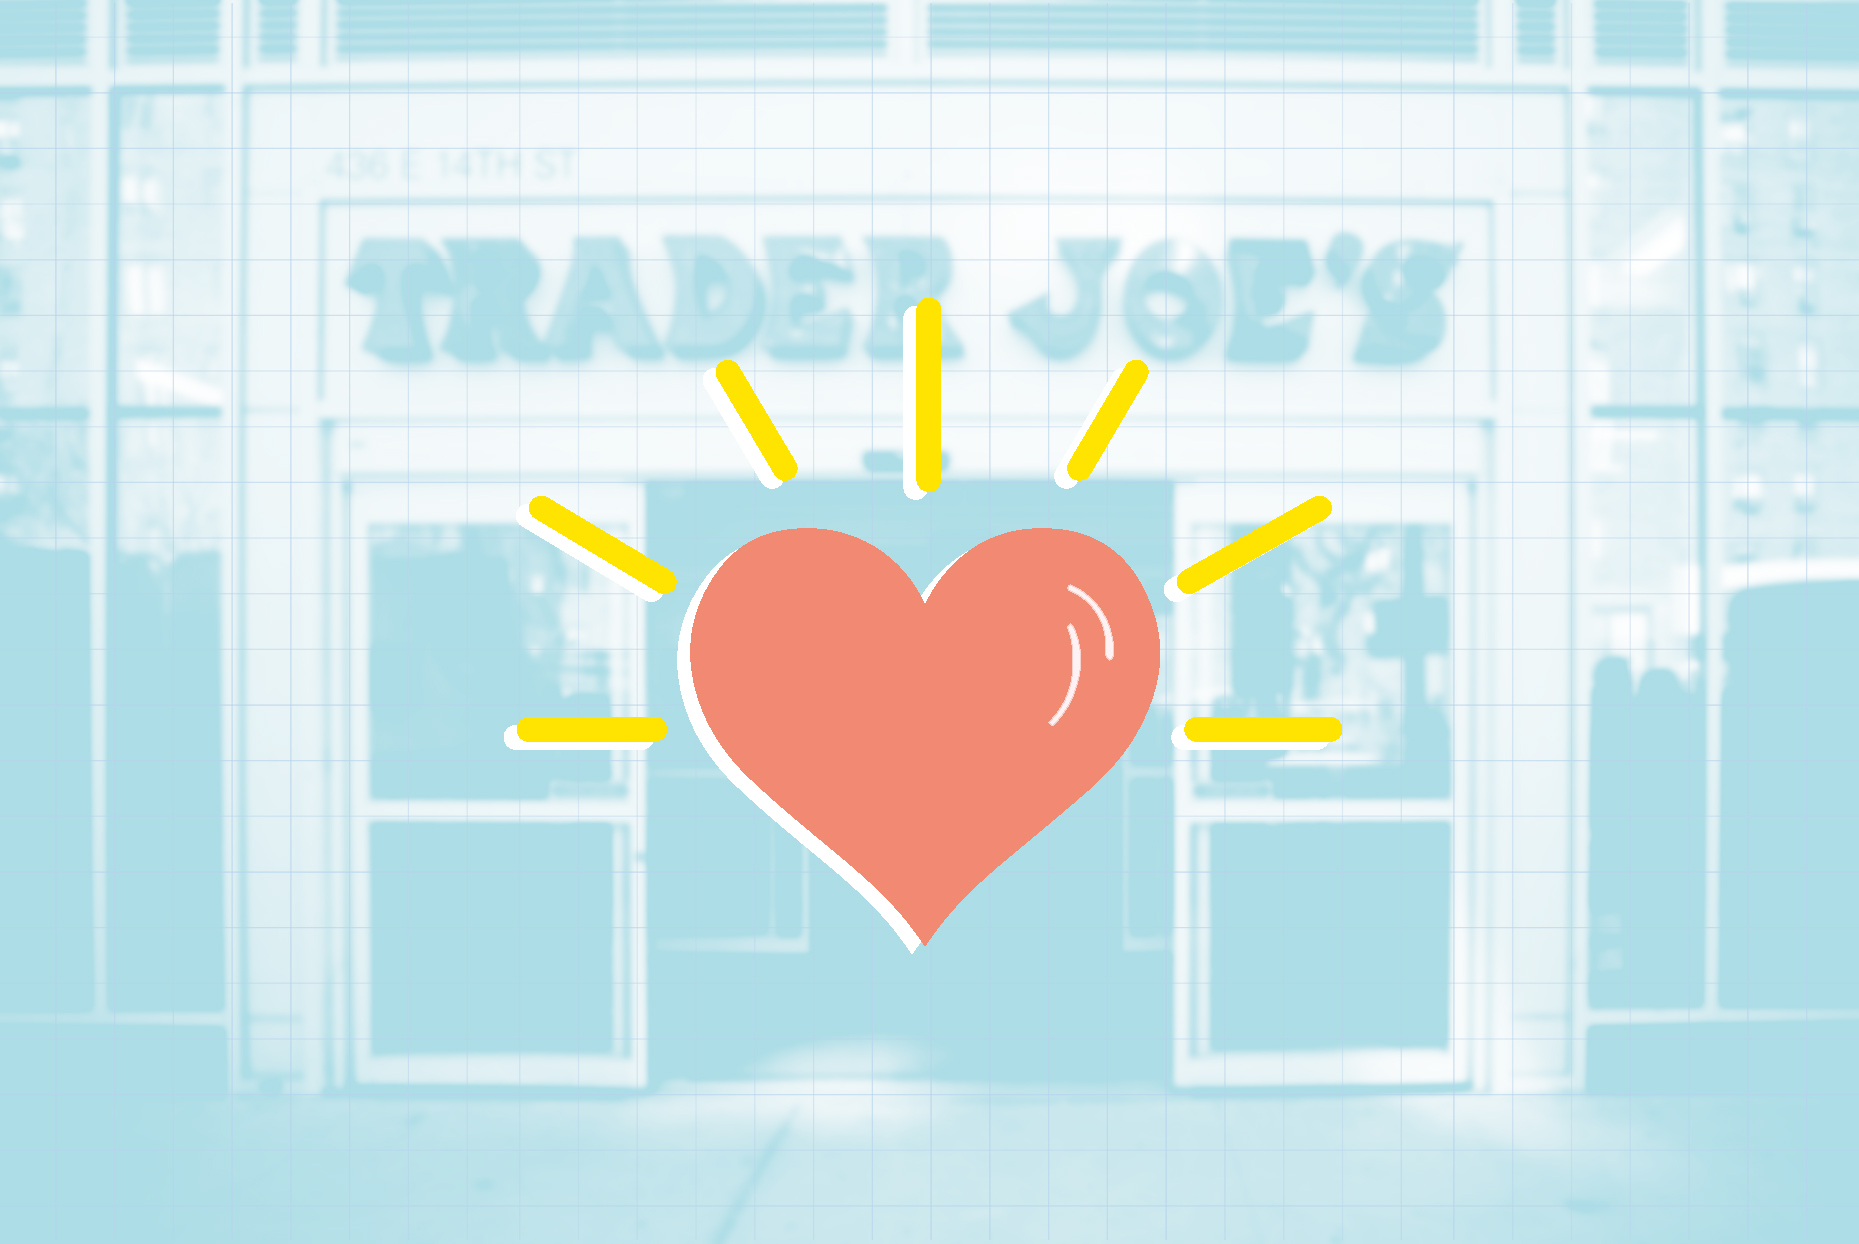 An illustration of a heart on a photo of a trader joe's store front